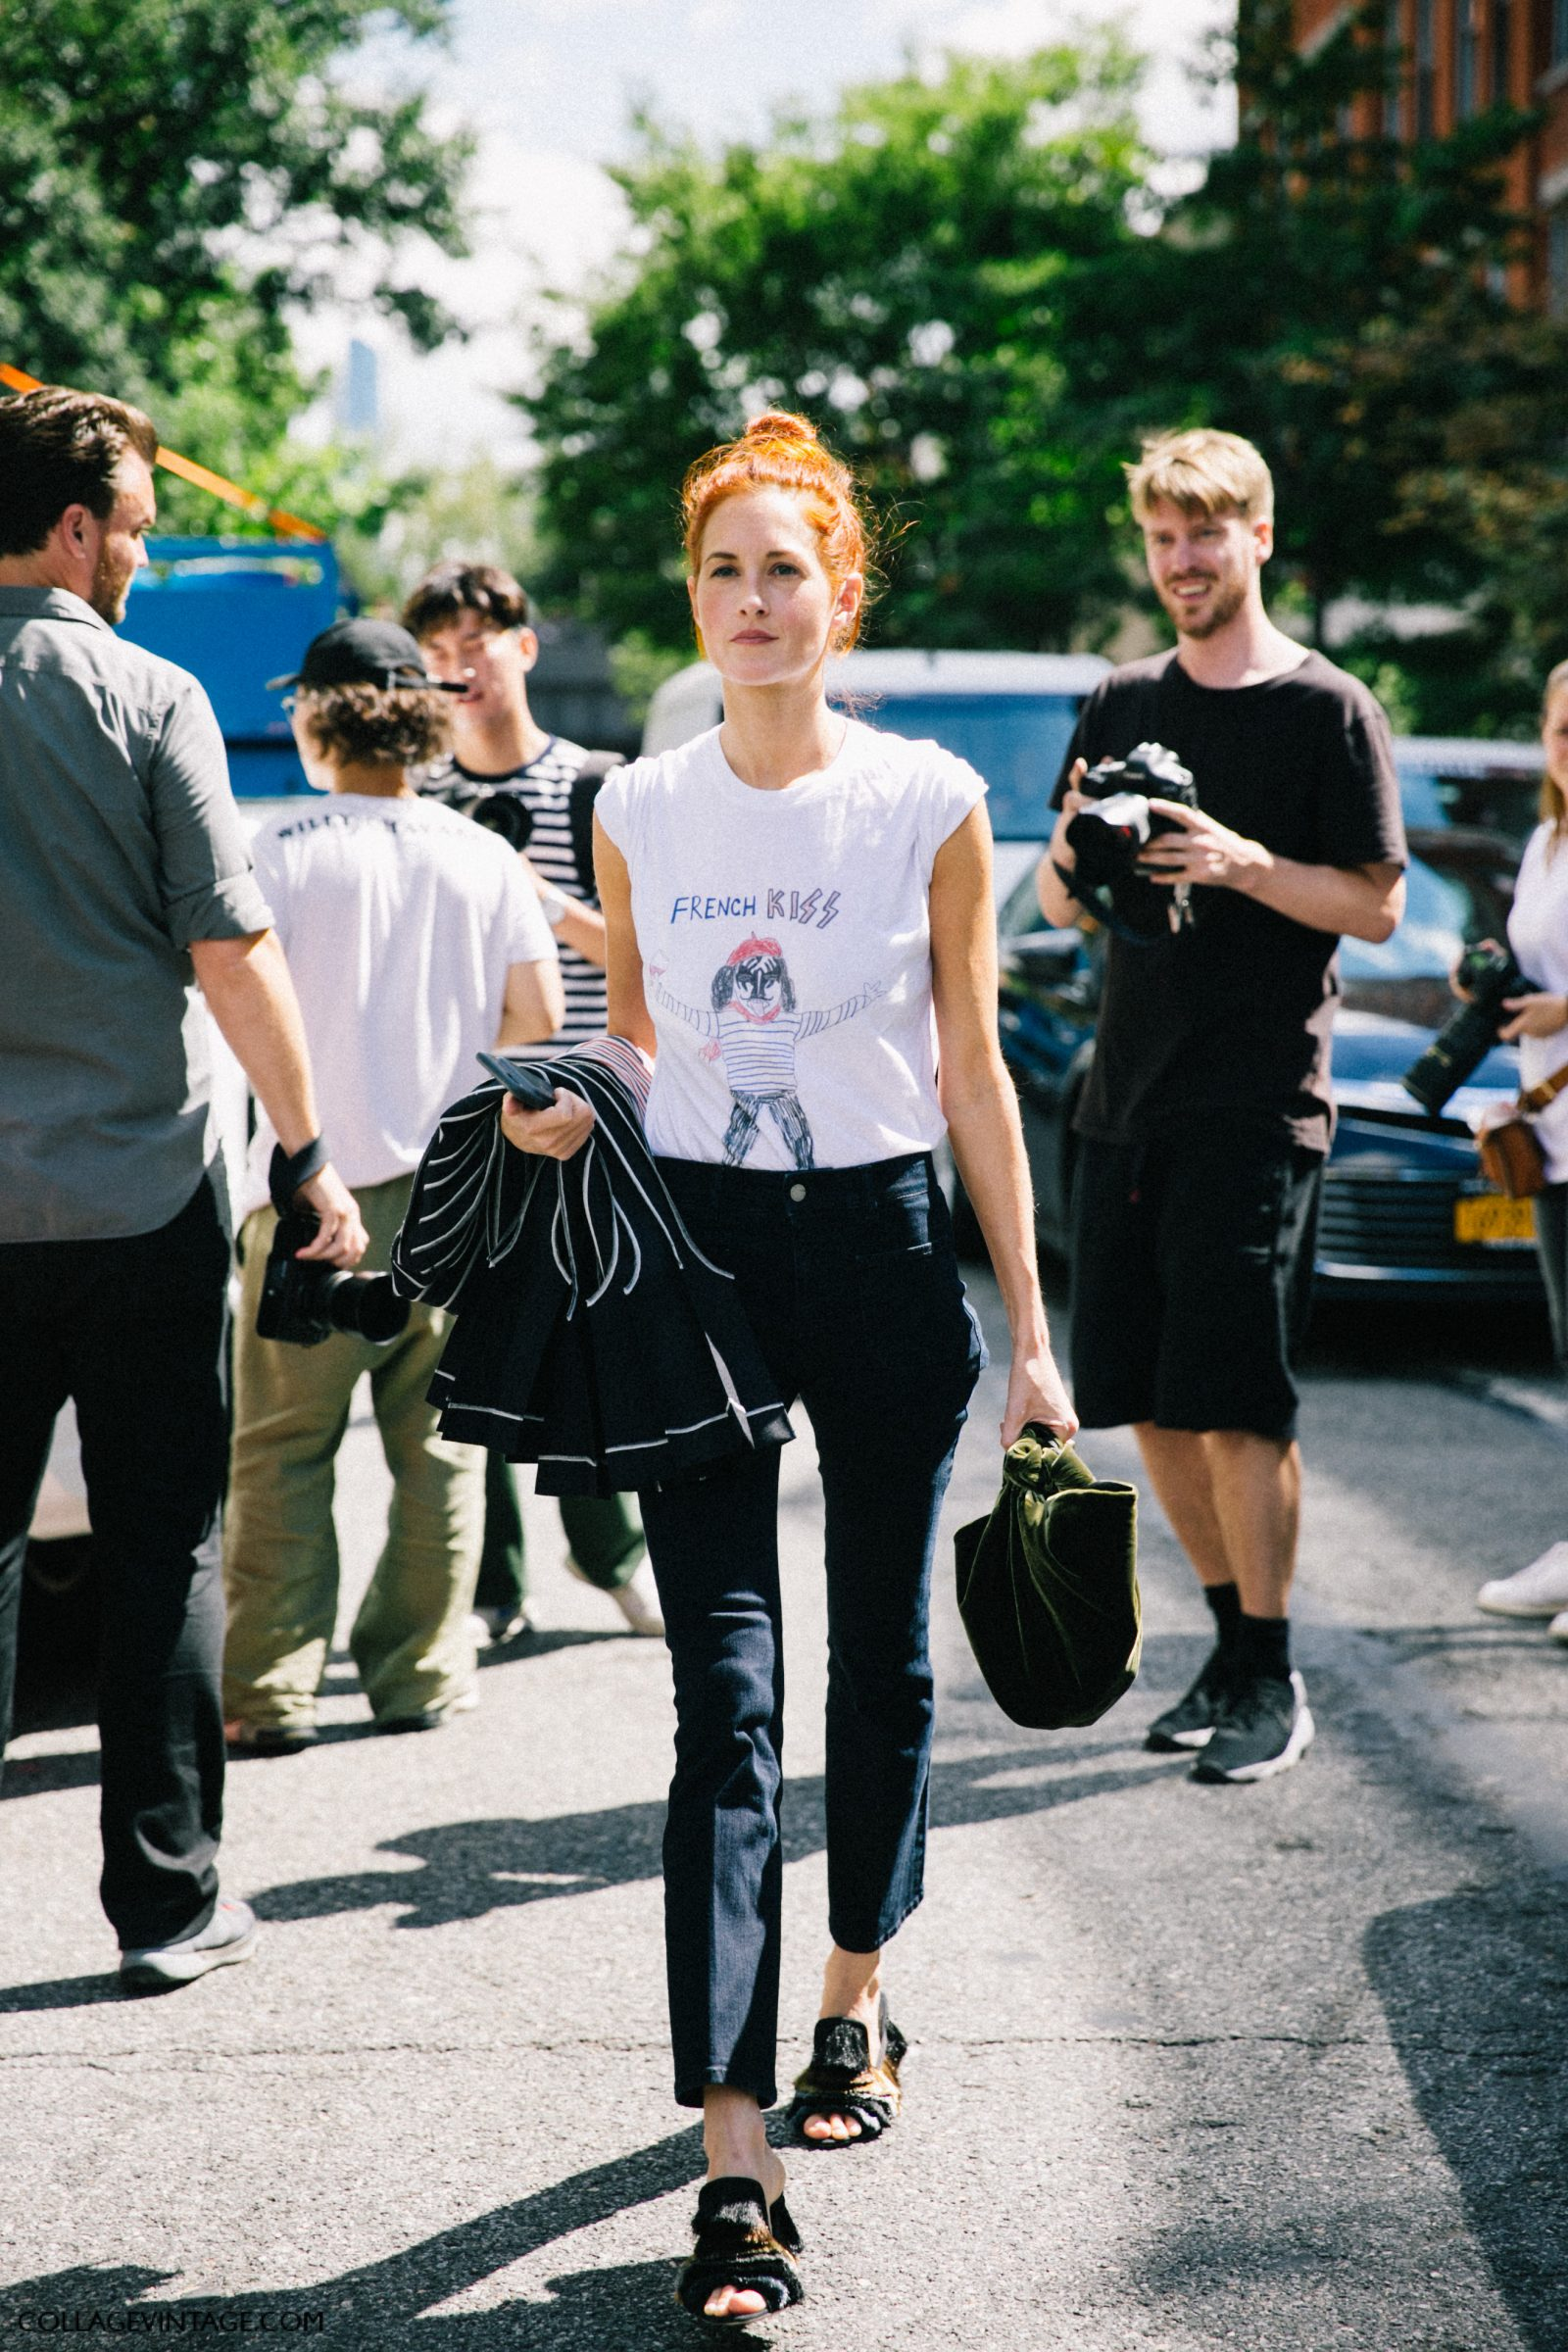 nyfw-new_york_fashion_week_ss17-street_style-outfits-collage_vintage-vintage-phillip_lim-the-row-proenza_schouler-rossie_aussolin-220